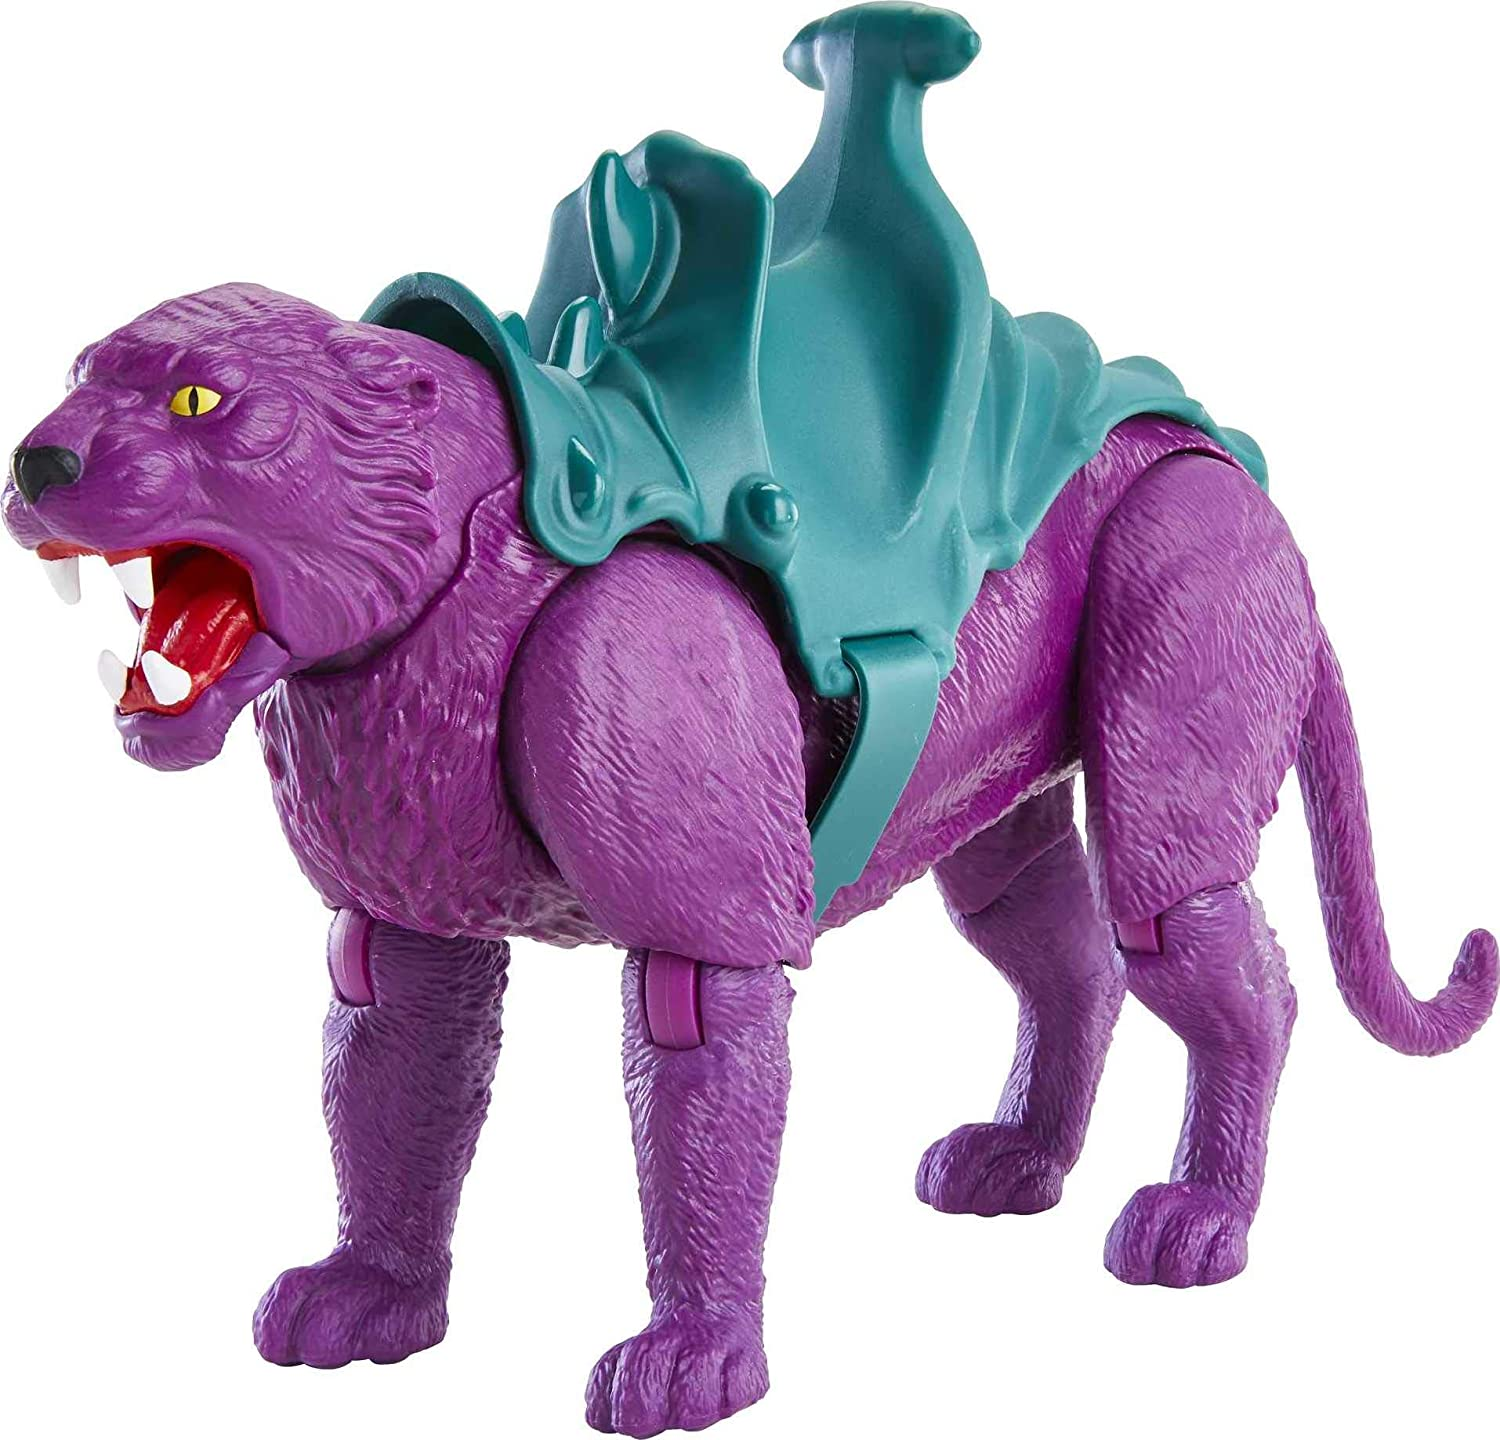 MASTERS OF THE UNIVERSE ORIGINS PANTHOR FIGURE 1